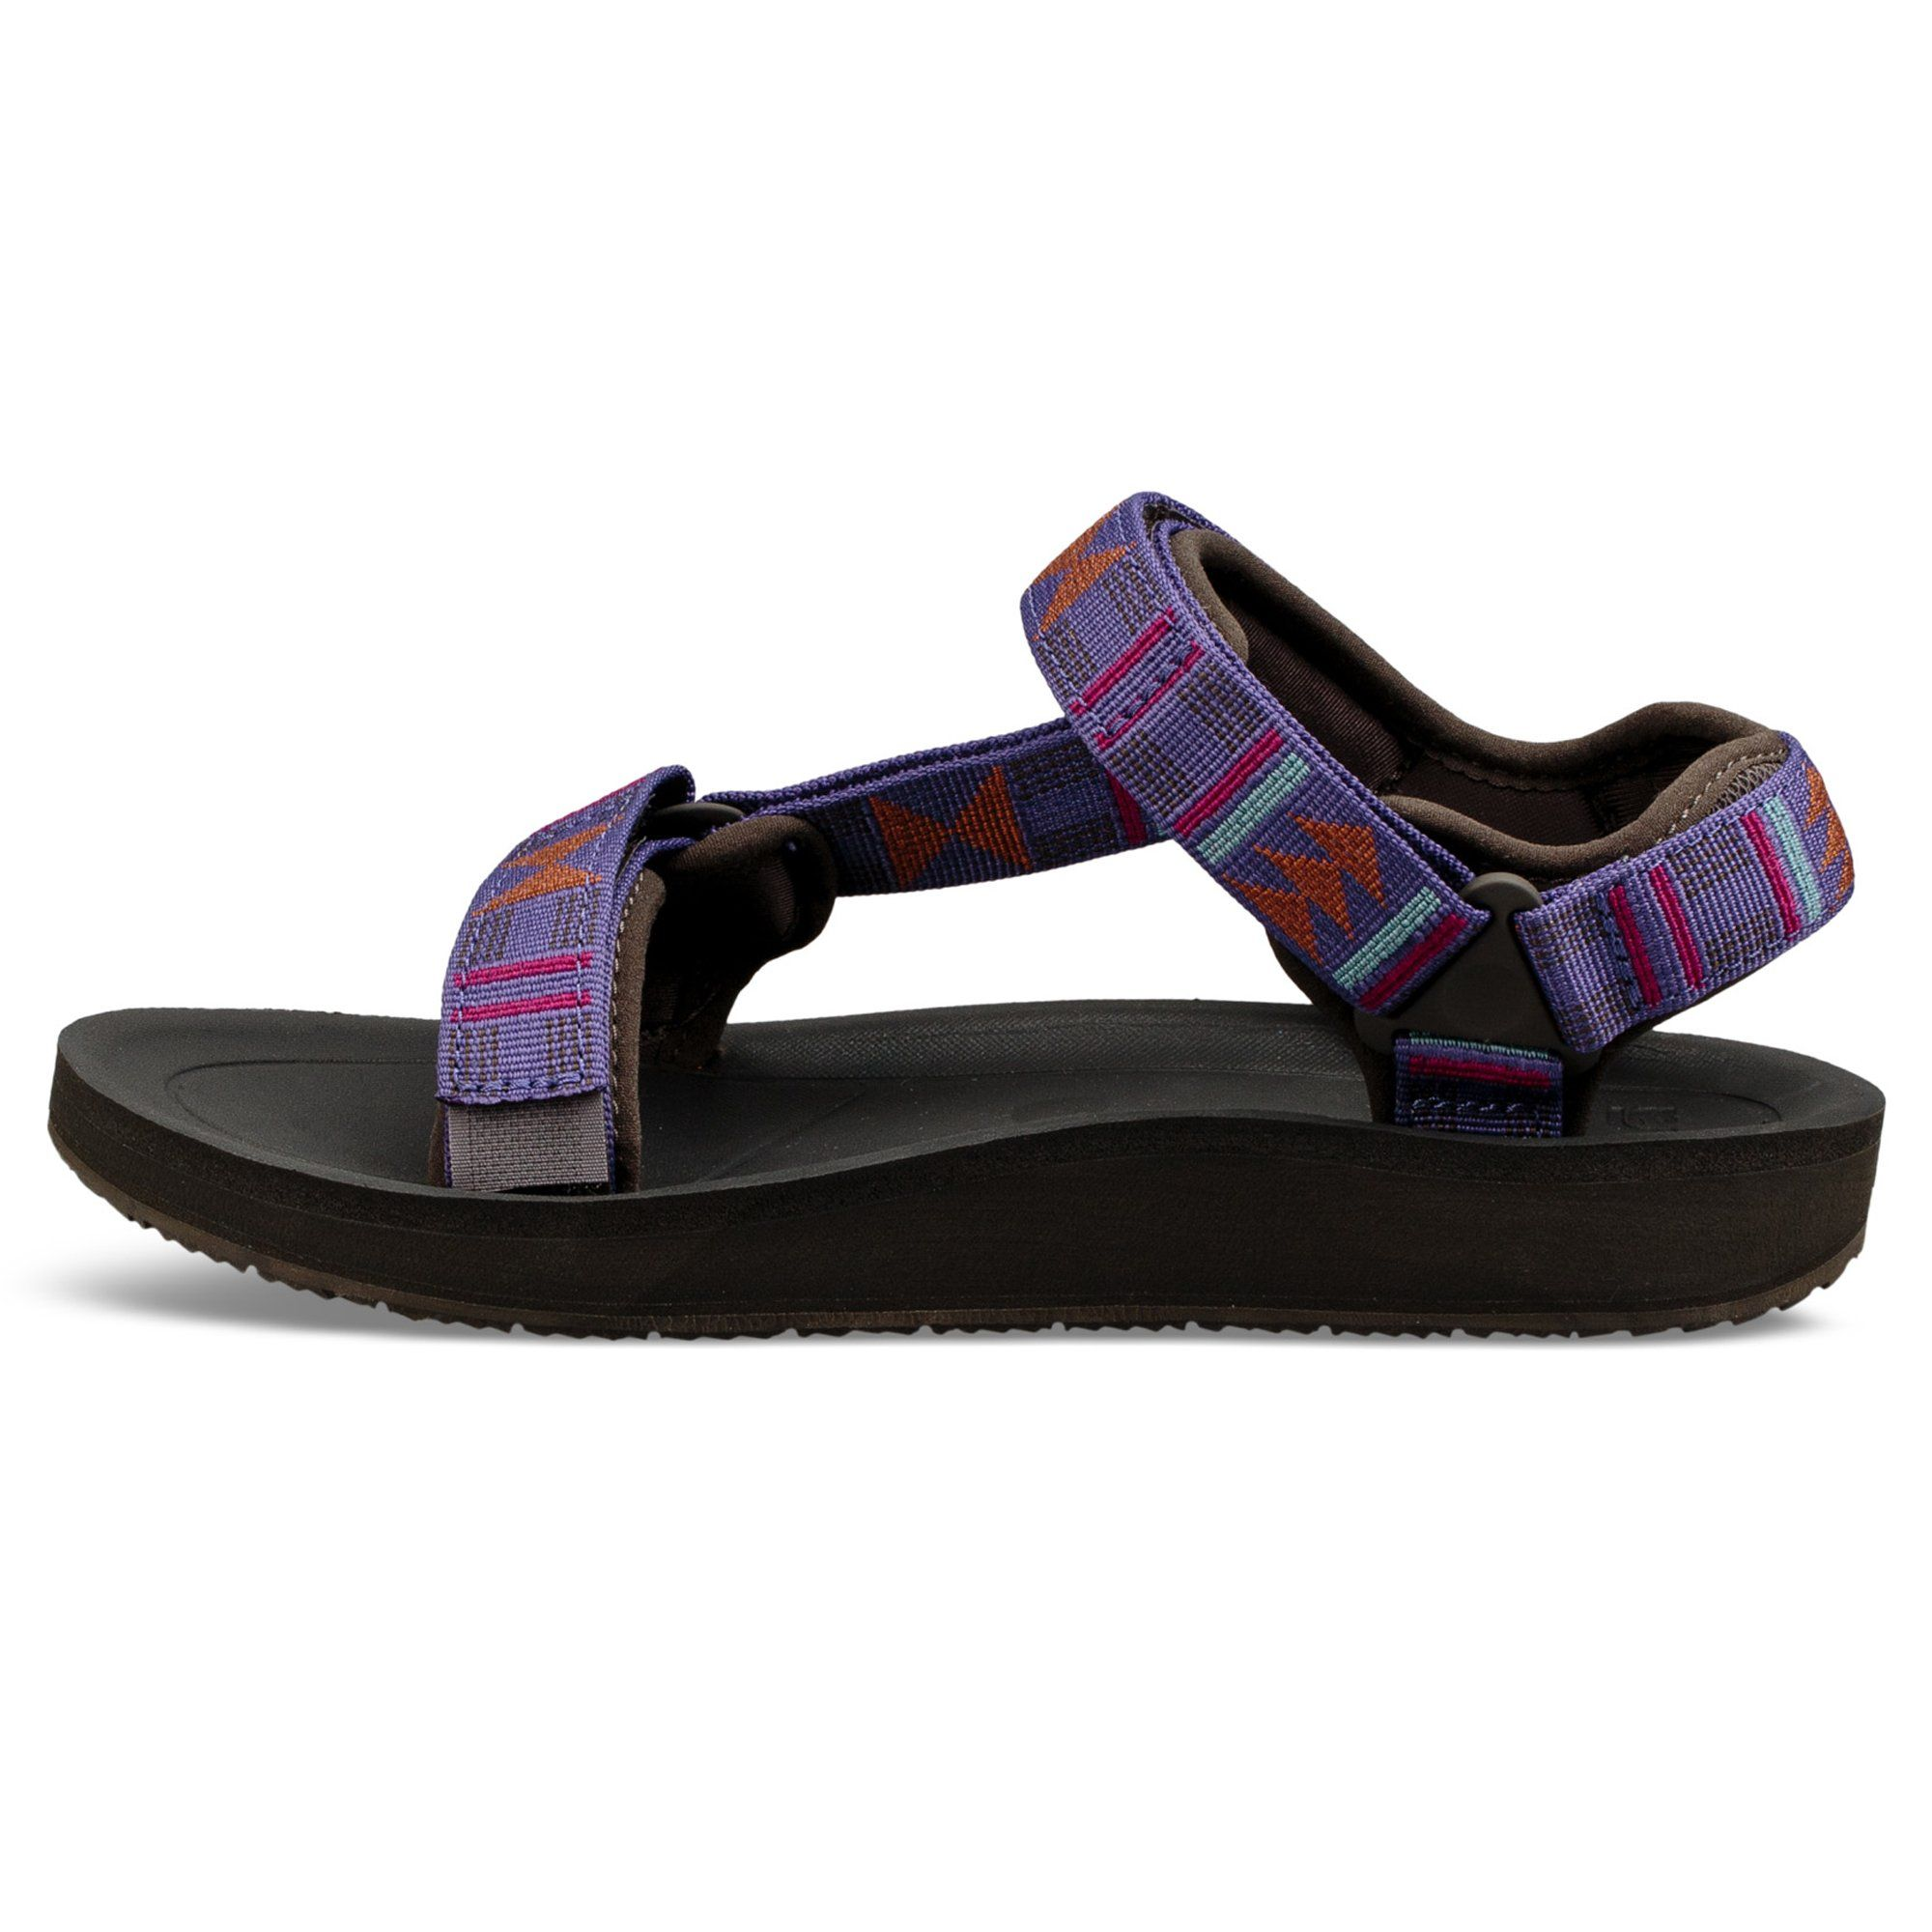 eb7feaf9c302 Teva Womens Womens W Original Universal Premier Sport Sandal Beach Break  Deep Wisteria 8 M US -- You can find more details by visiting the image  link.